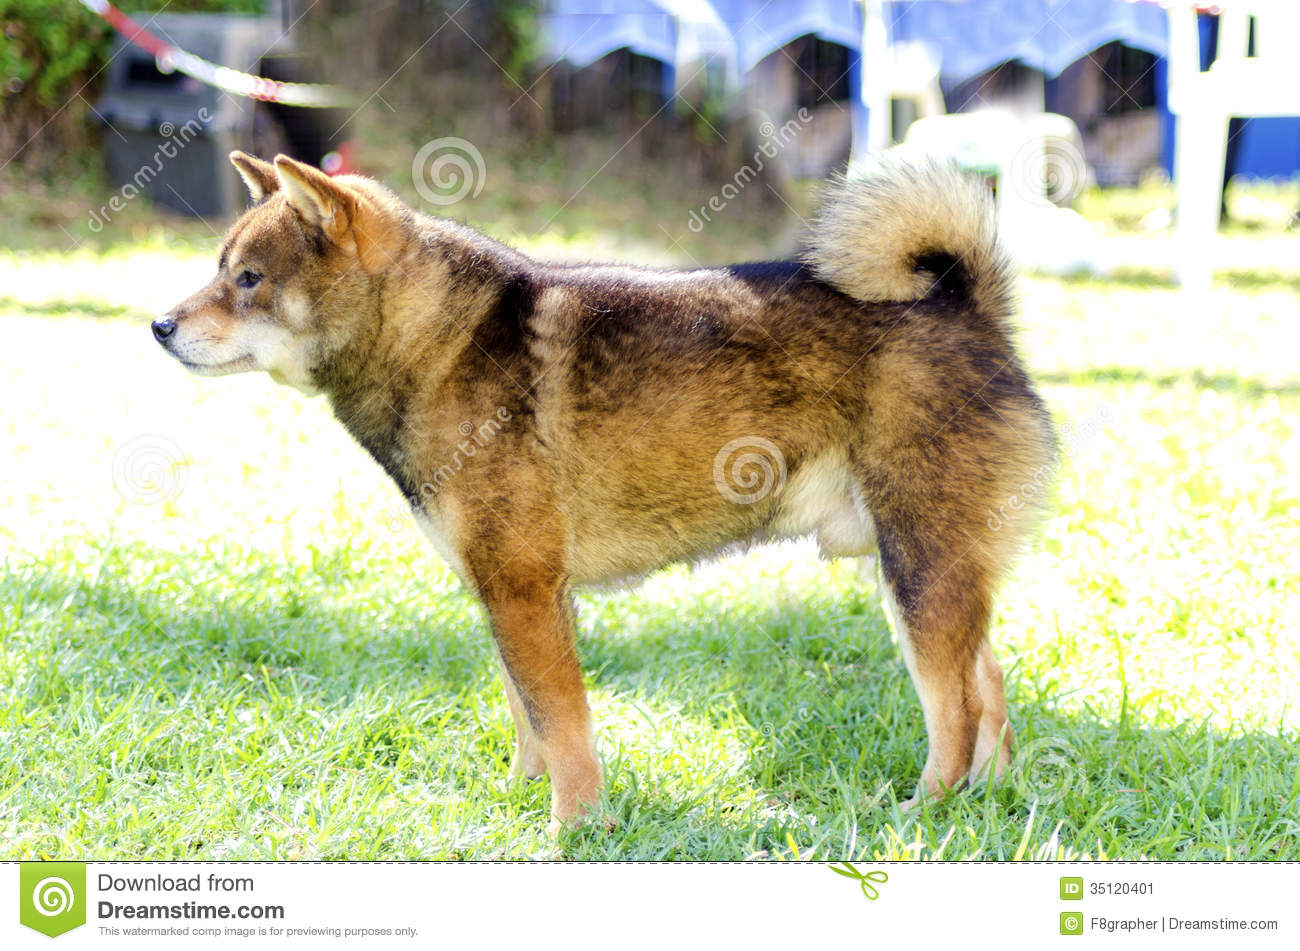 ... dog standing on the lawn. Japanese Shiba Inu dogs are similar to Akita